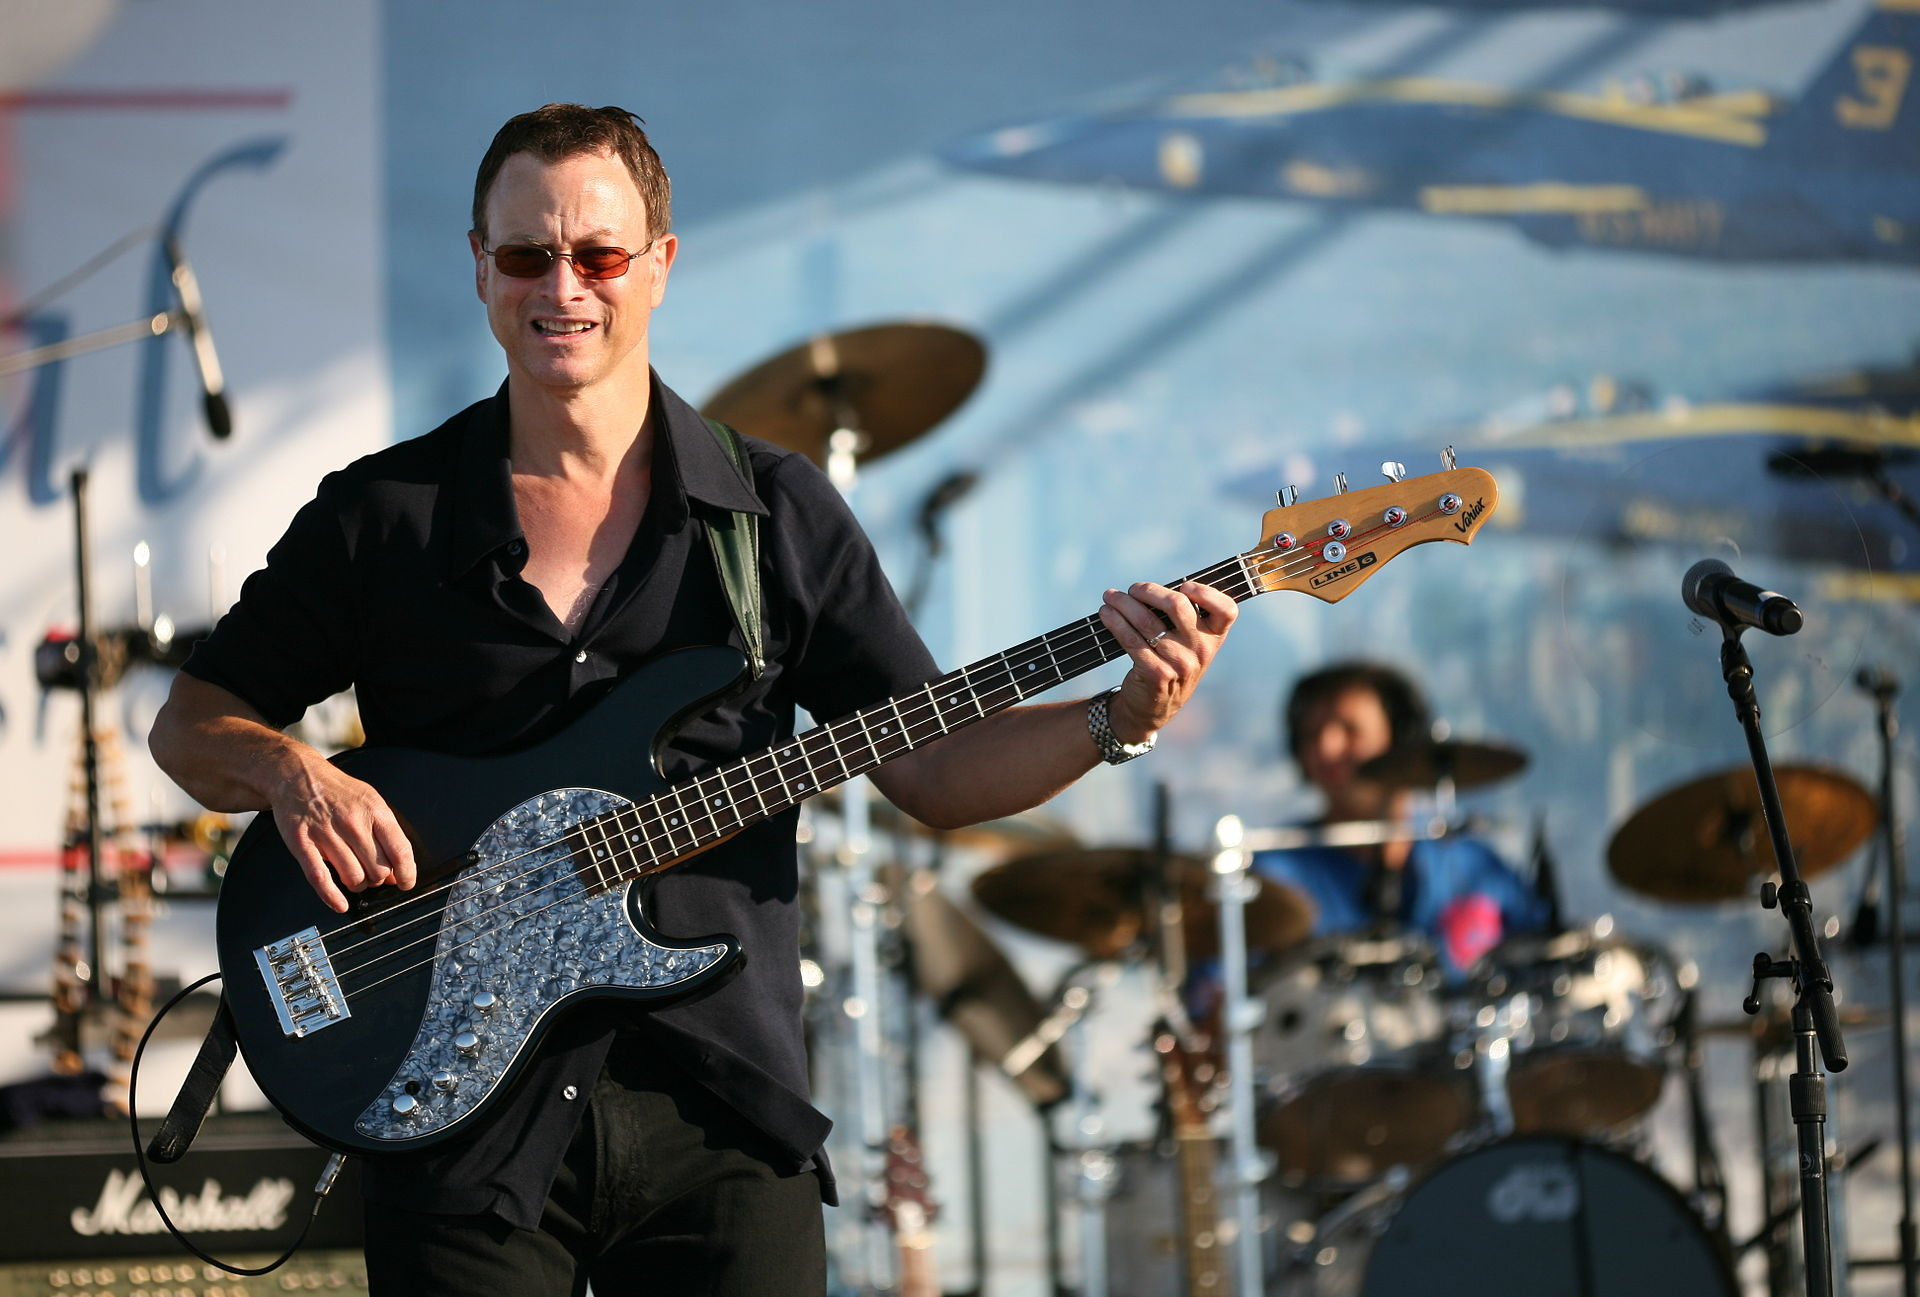 Gary Sinise on stage 1 crop 20 Things You Never Knew About Gary Sinise